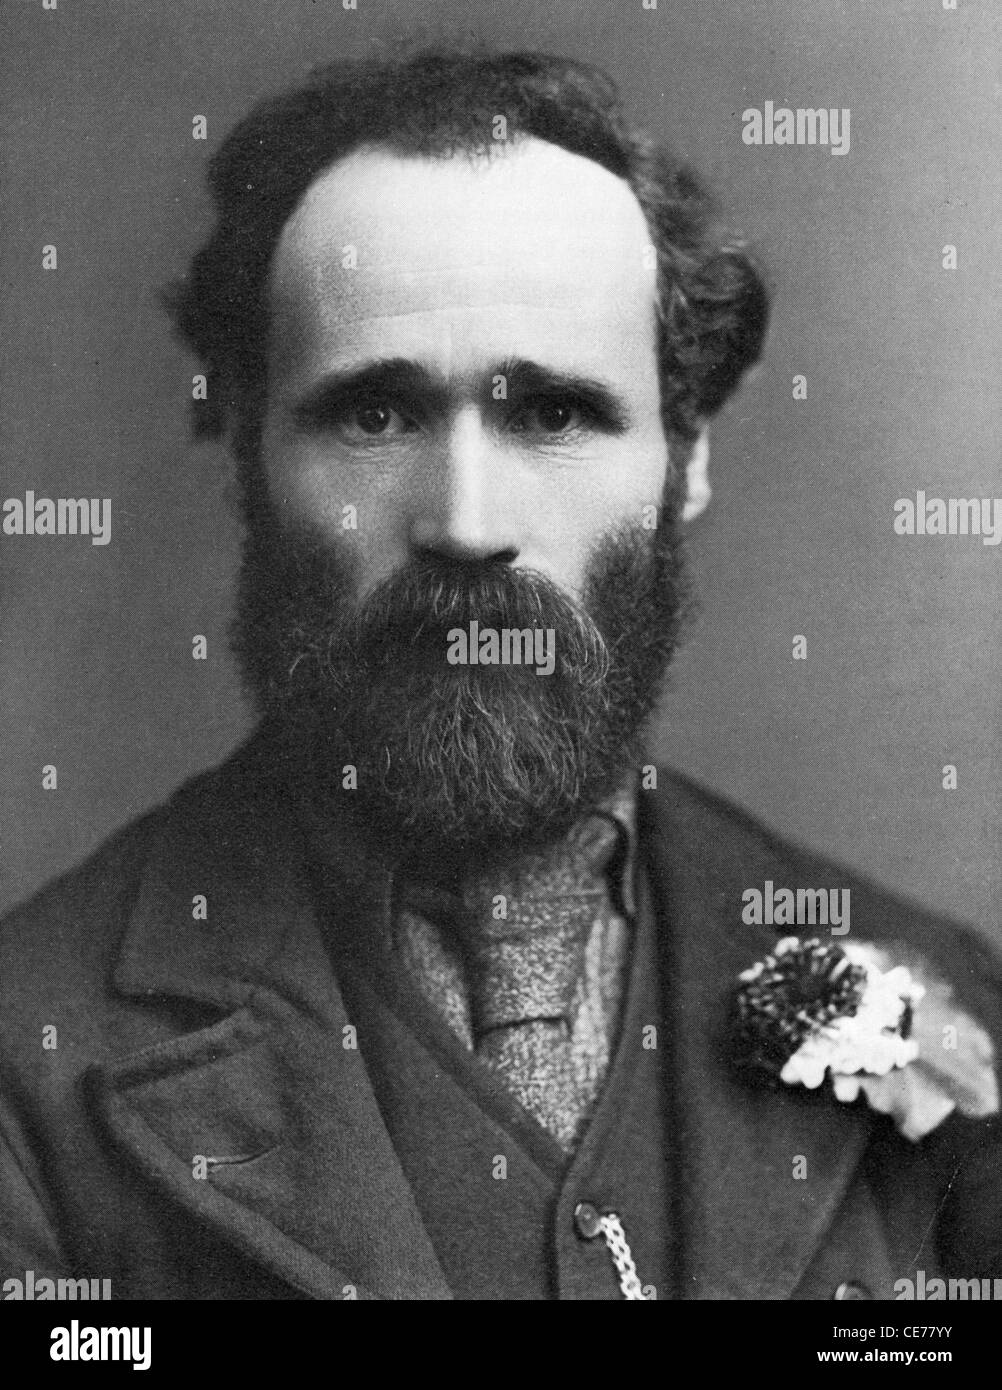 JAMES KEIR HARDIE (1856-1915) Scottish socialist instrumental in founding the British Labour Party - Stock Image